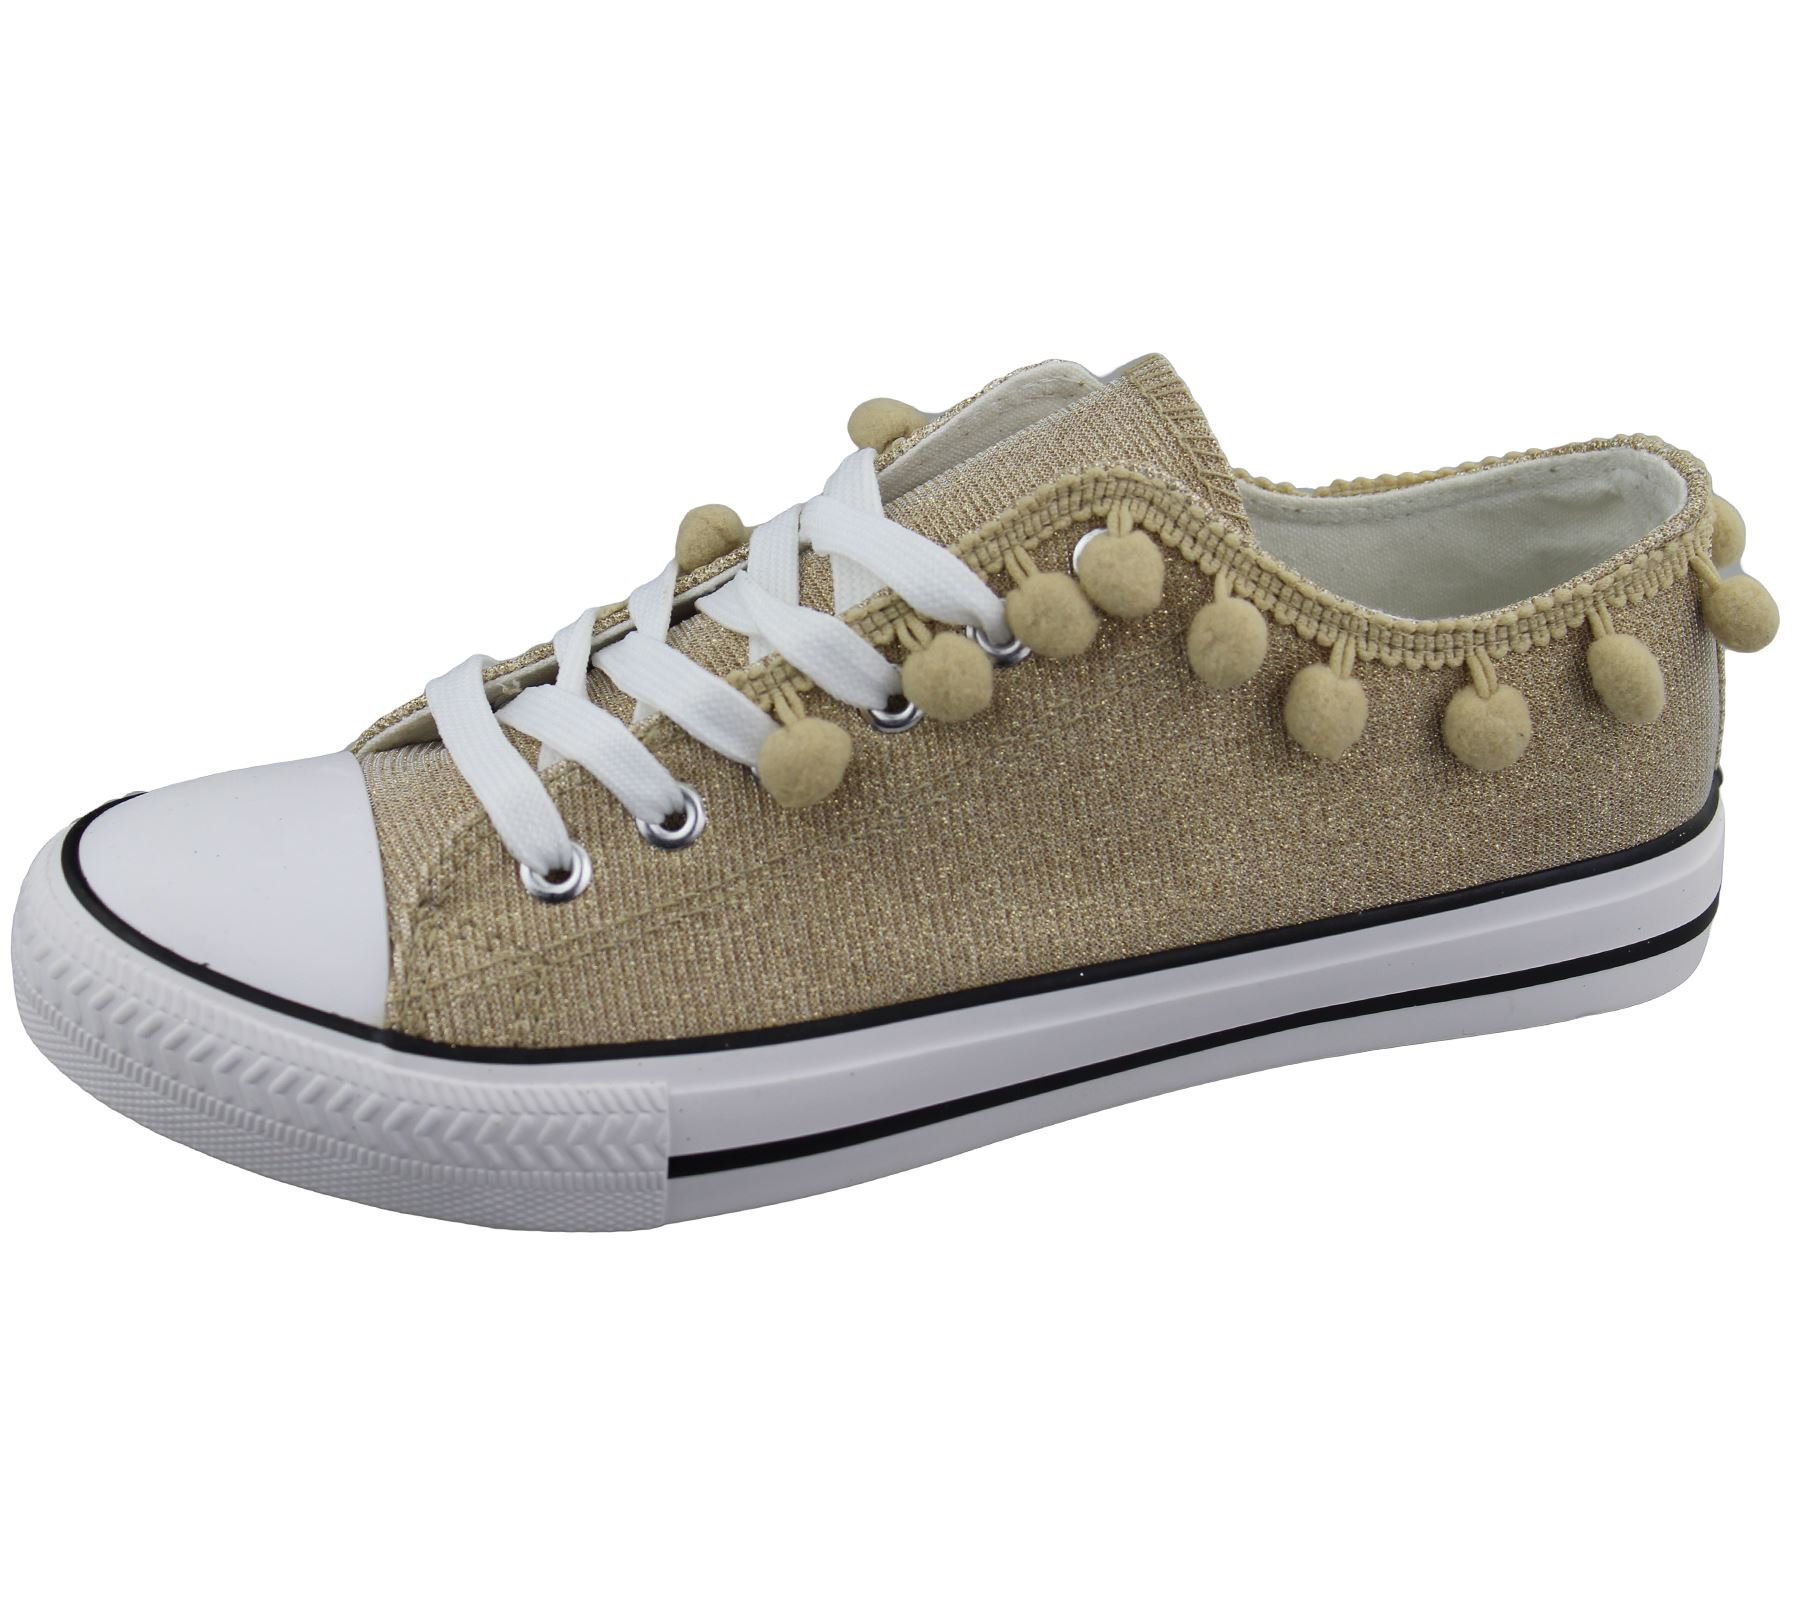 Womens-Sneakers-Flat-Pumps-Ladies-Glittered-Summer-Plimsole-Canvas-Shoes thumbnail 18